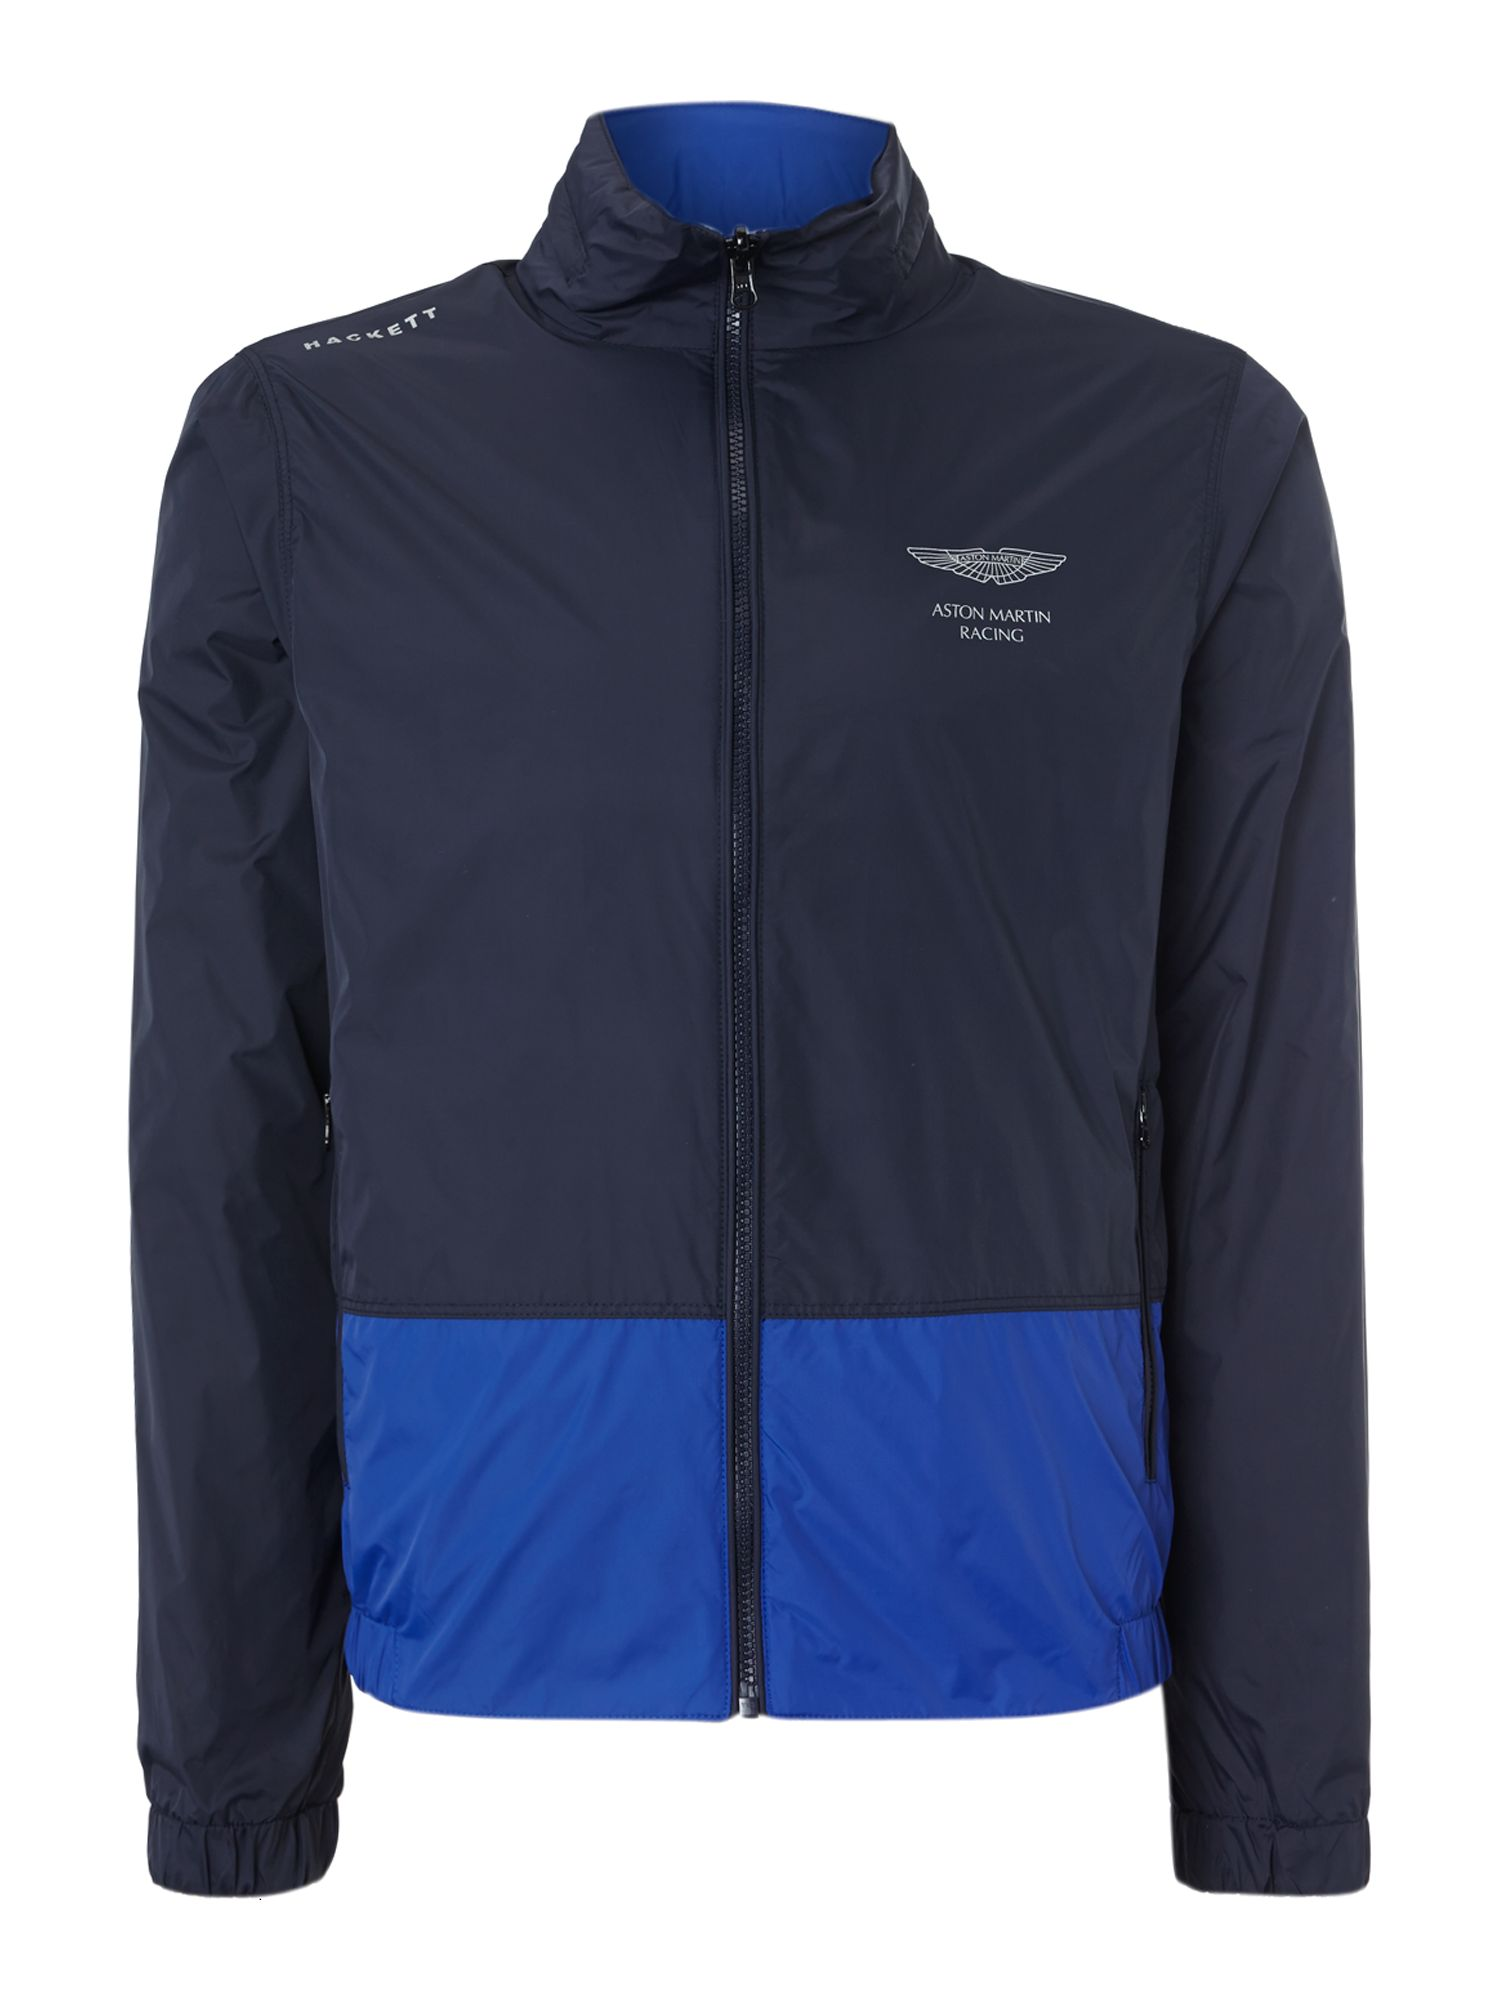 Aston martin reversible jacket